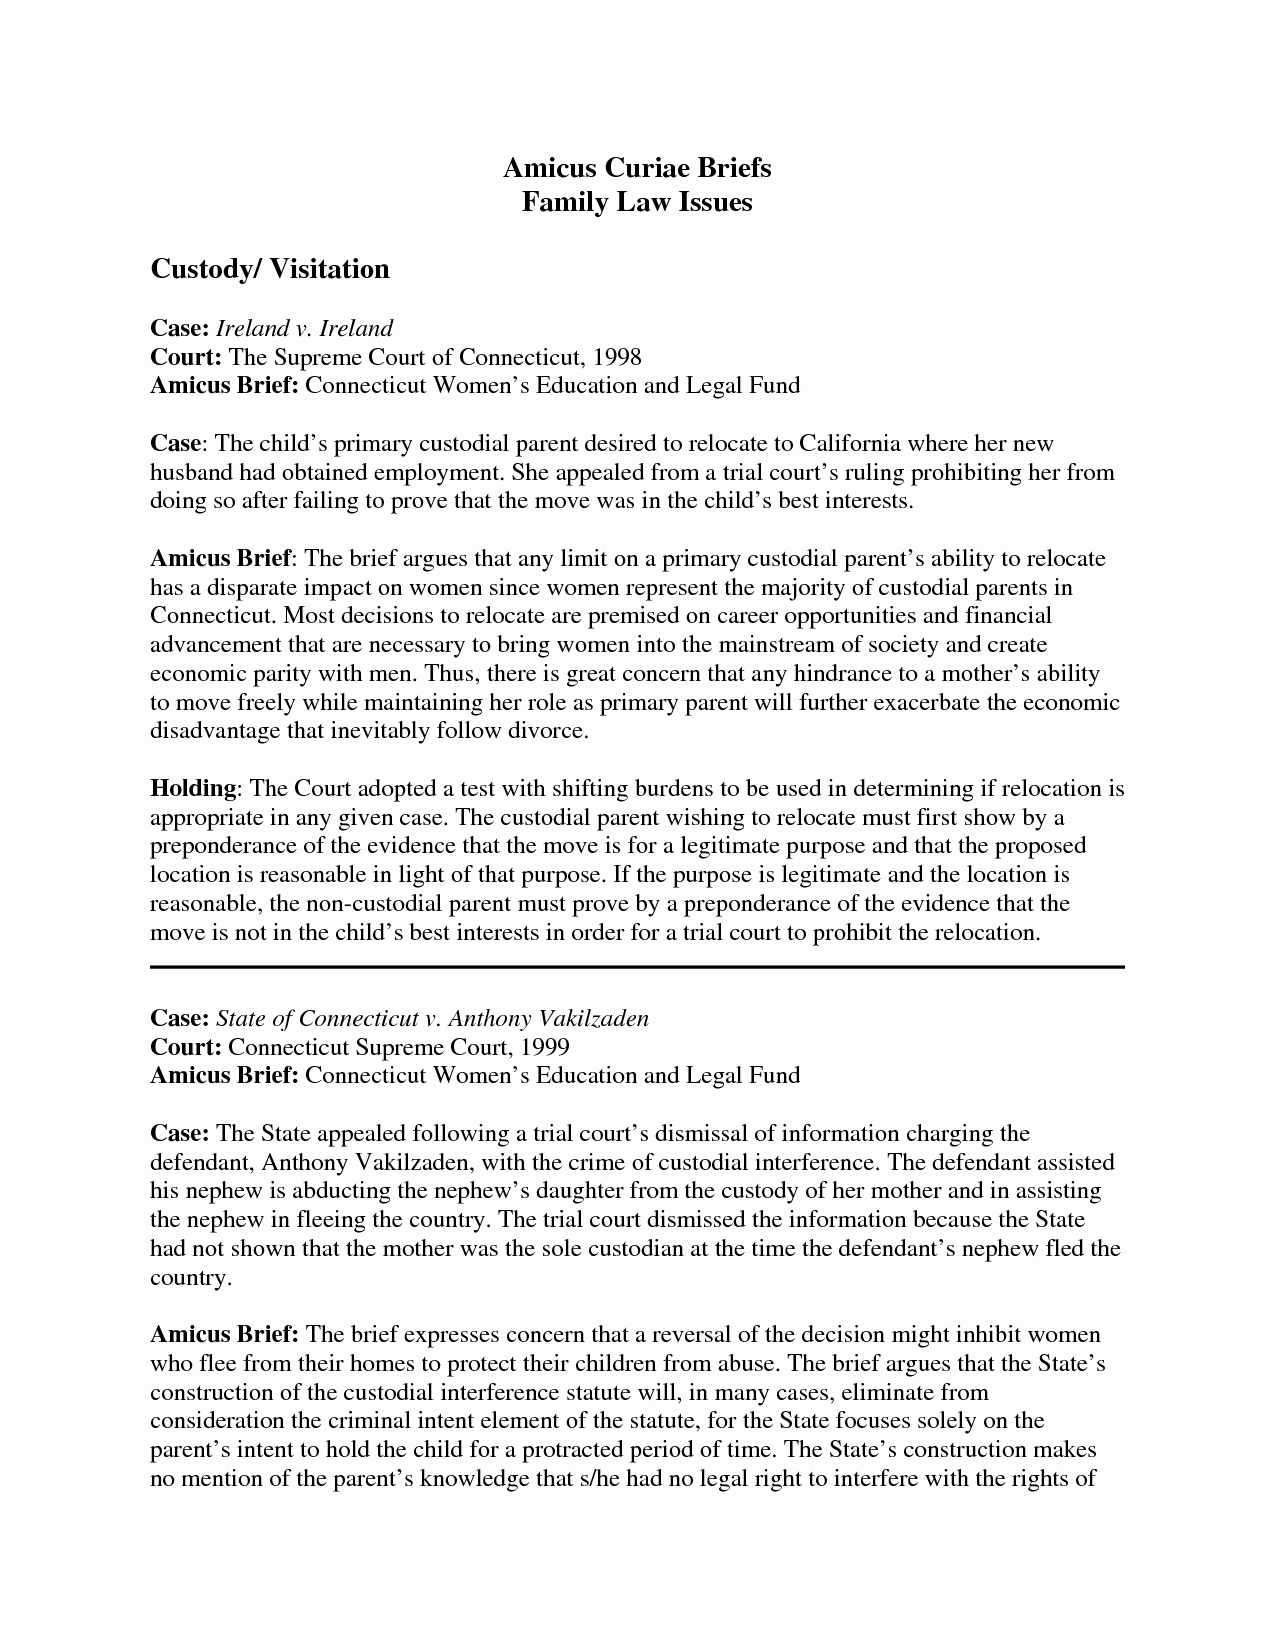 Case Brief Template Microsoft Word Best Of Case Brief Template